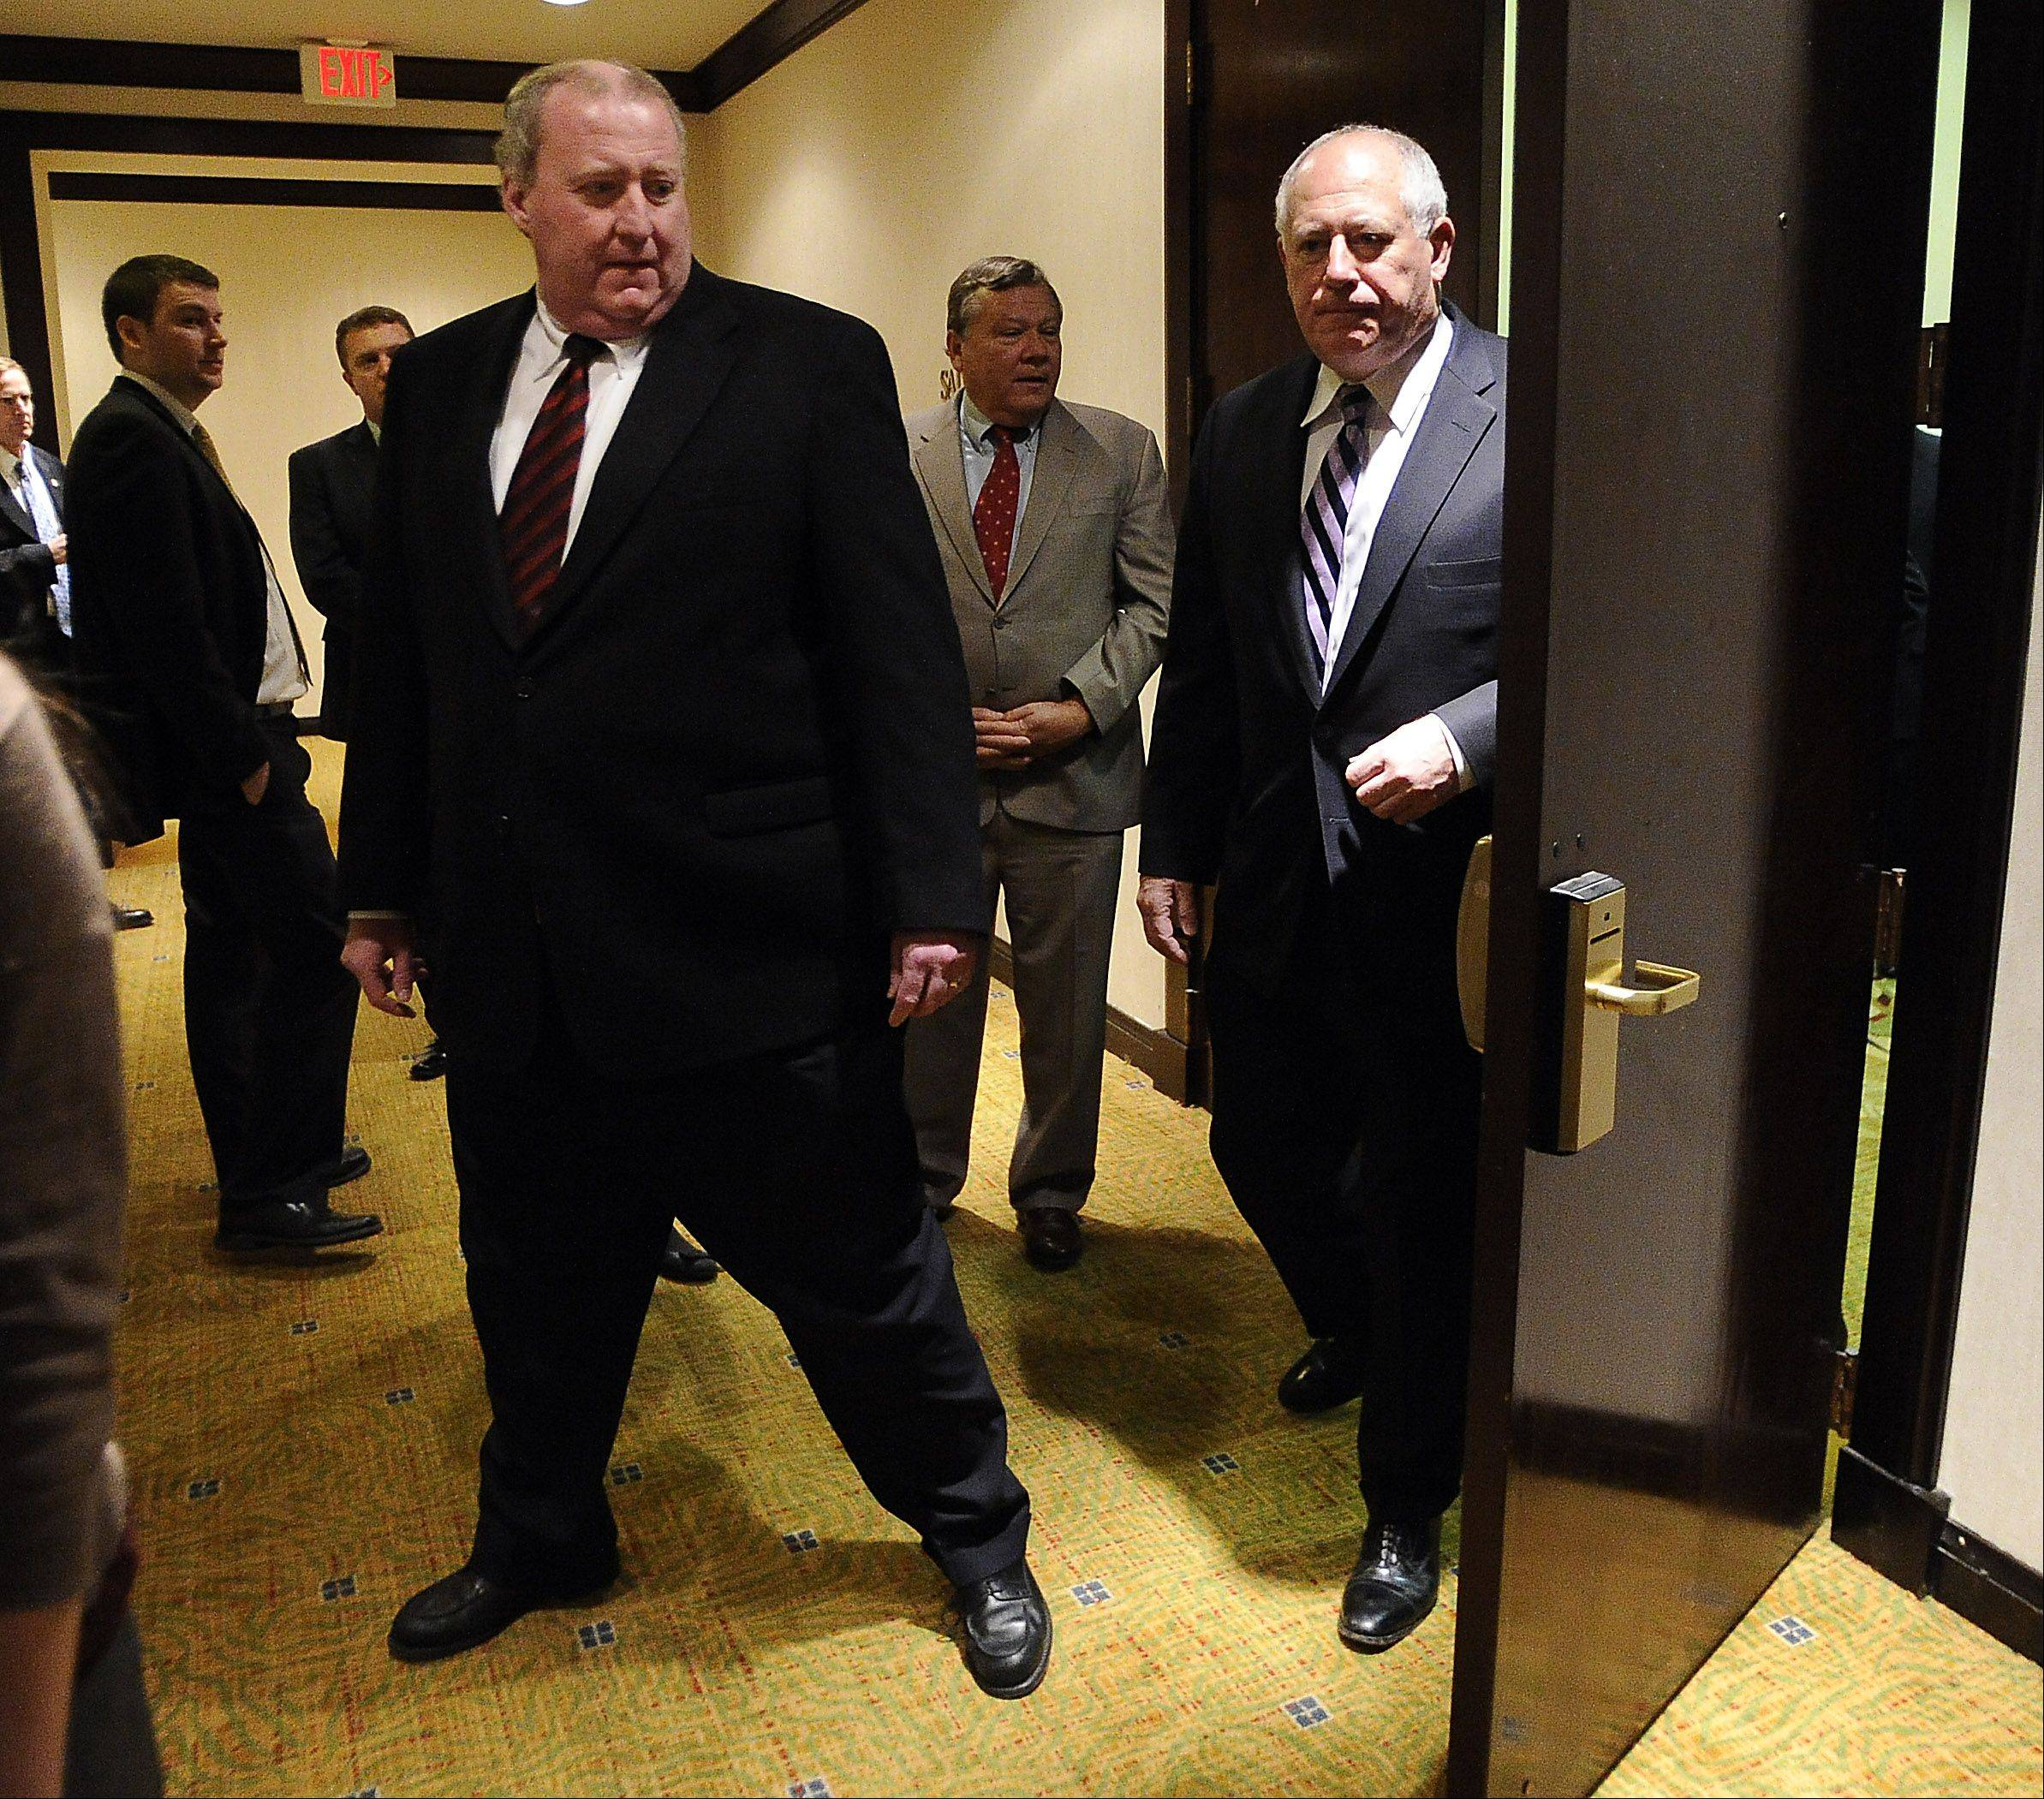 John Stull, CEO of Lafarge North America, left, and Governor Pat Quinn emerge from a private room after talking about the company moving its U.S. headquarters to Illinois.